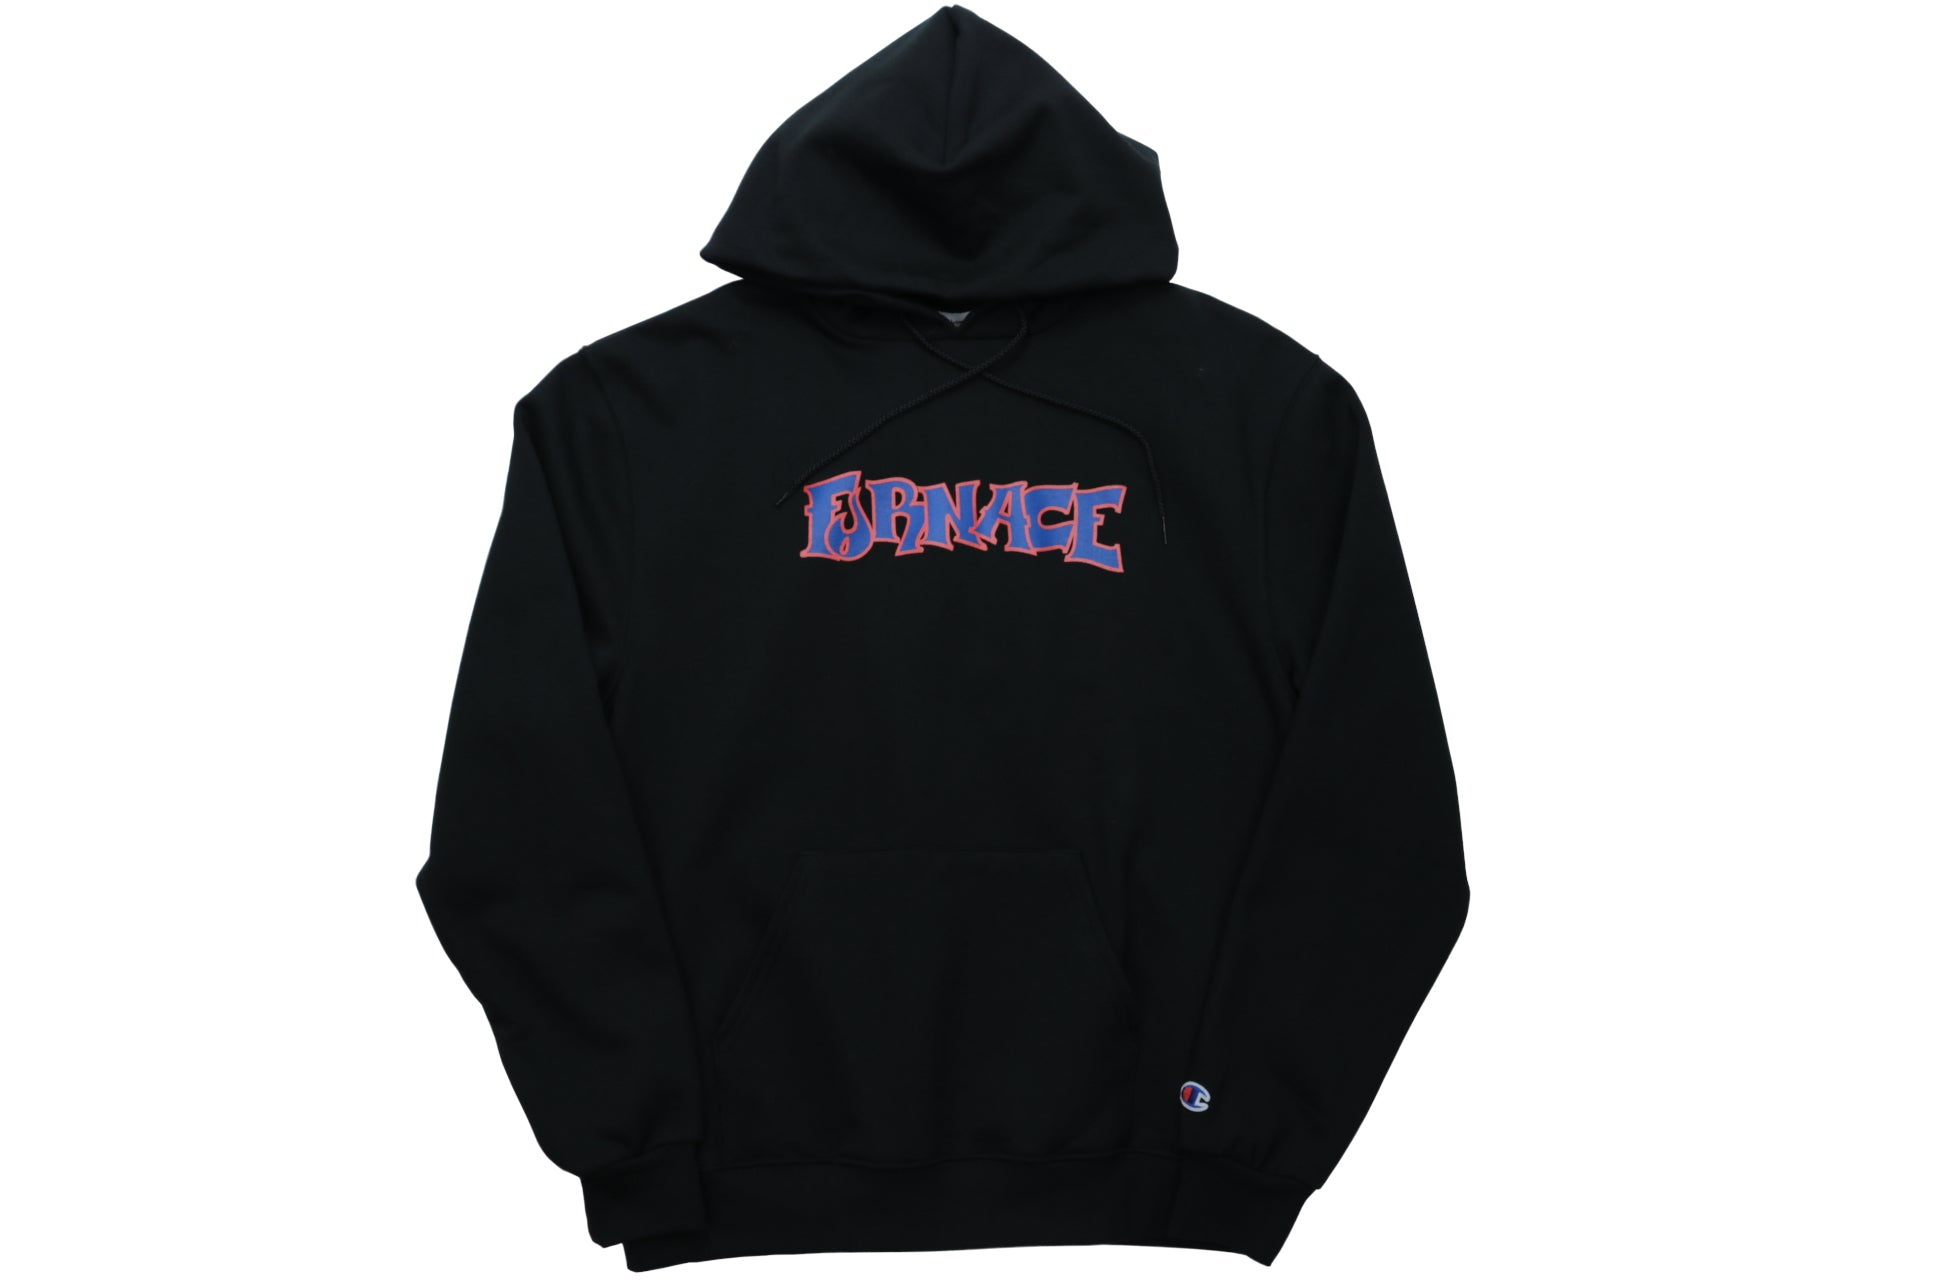 Wordmark Hood (Champion) - Black/Burnt Orange/Blue